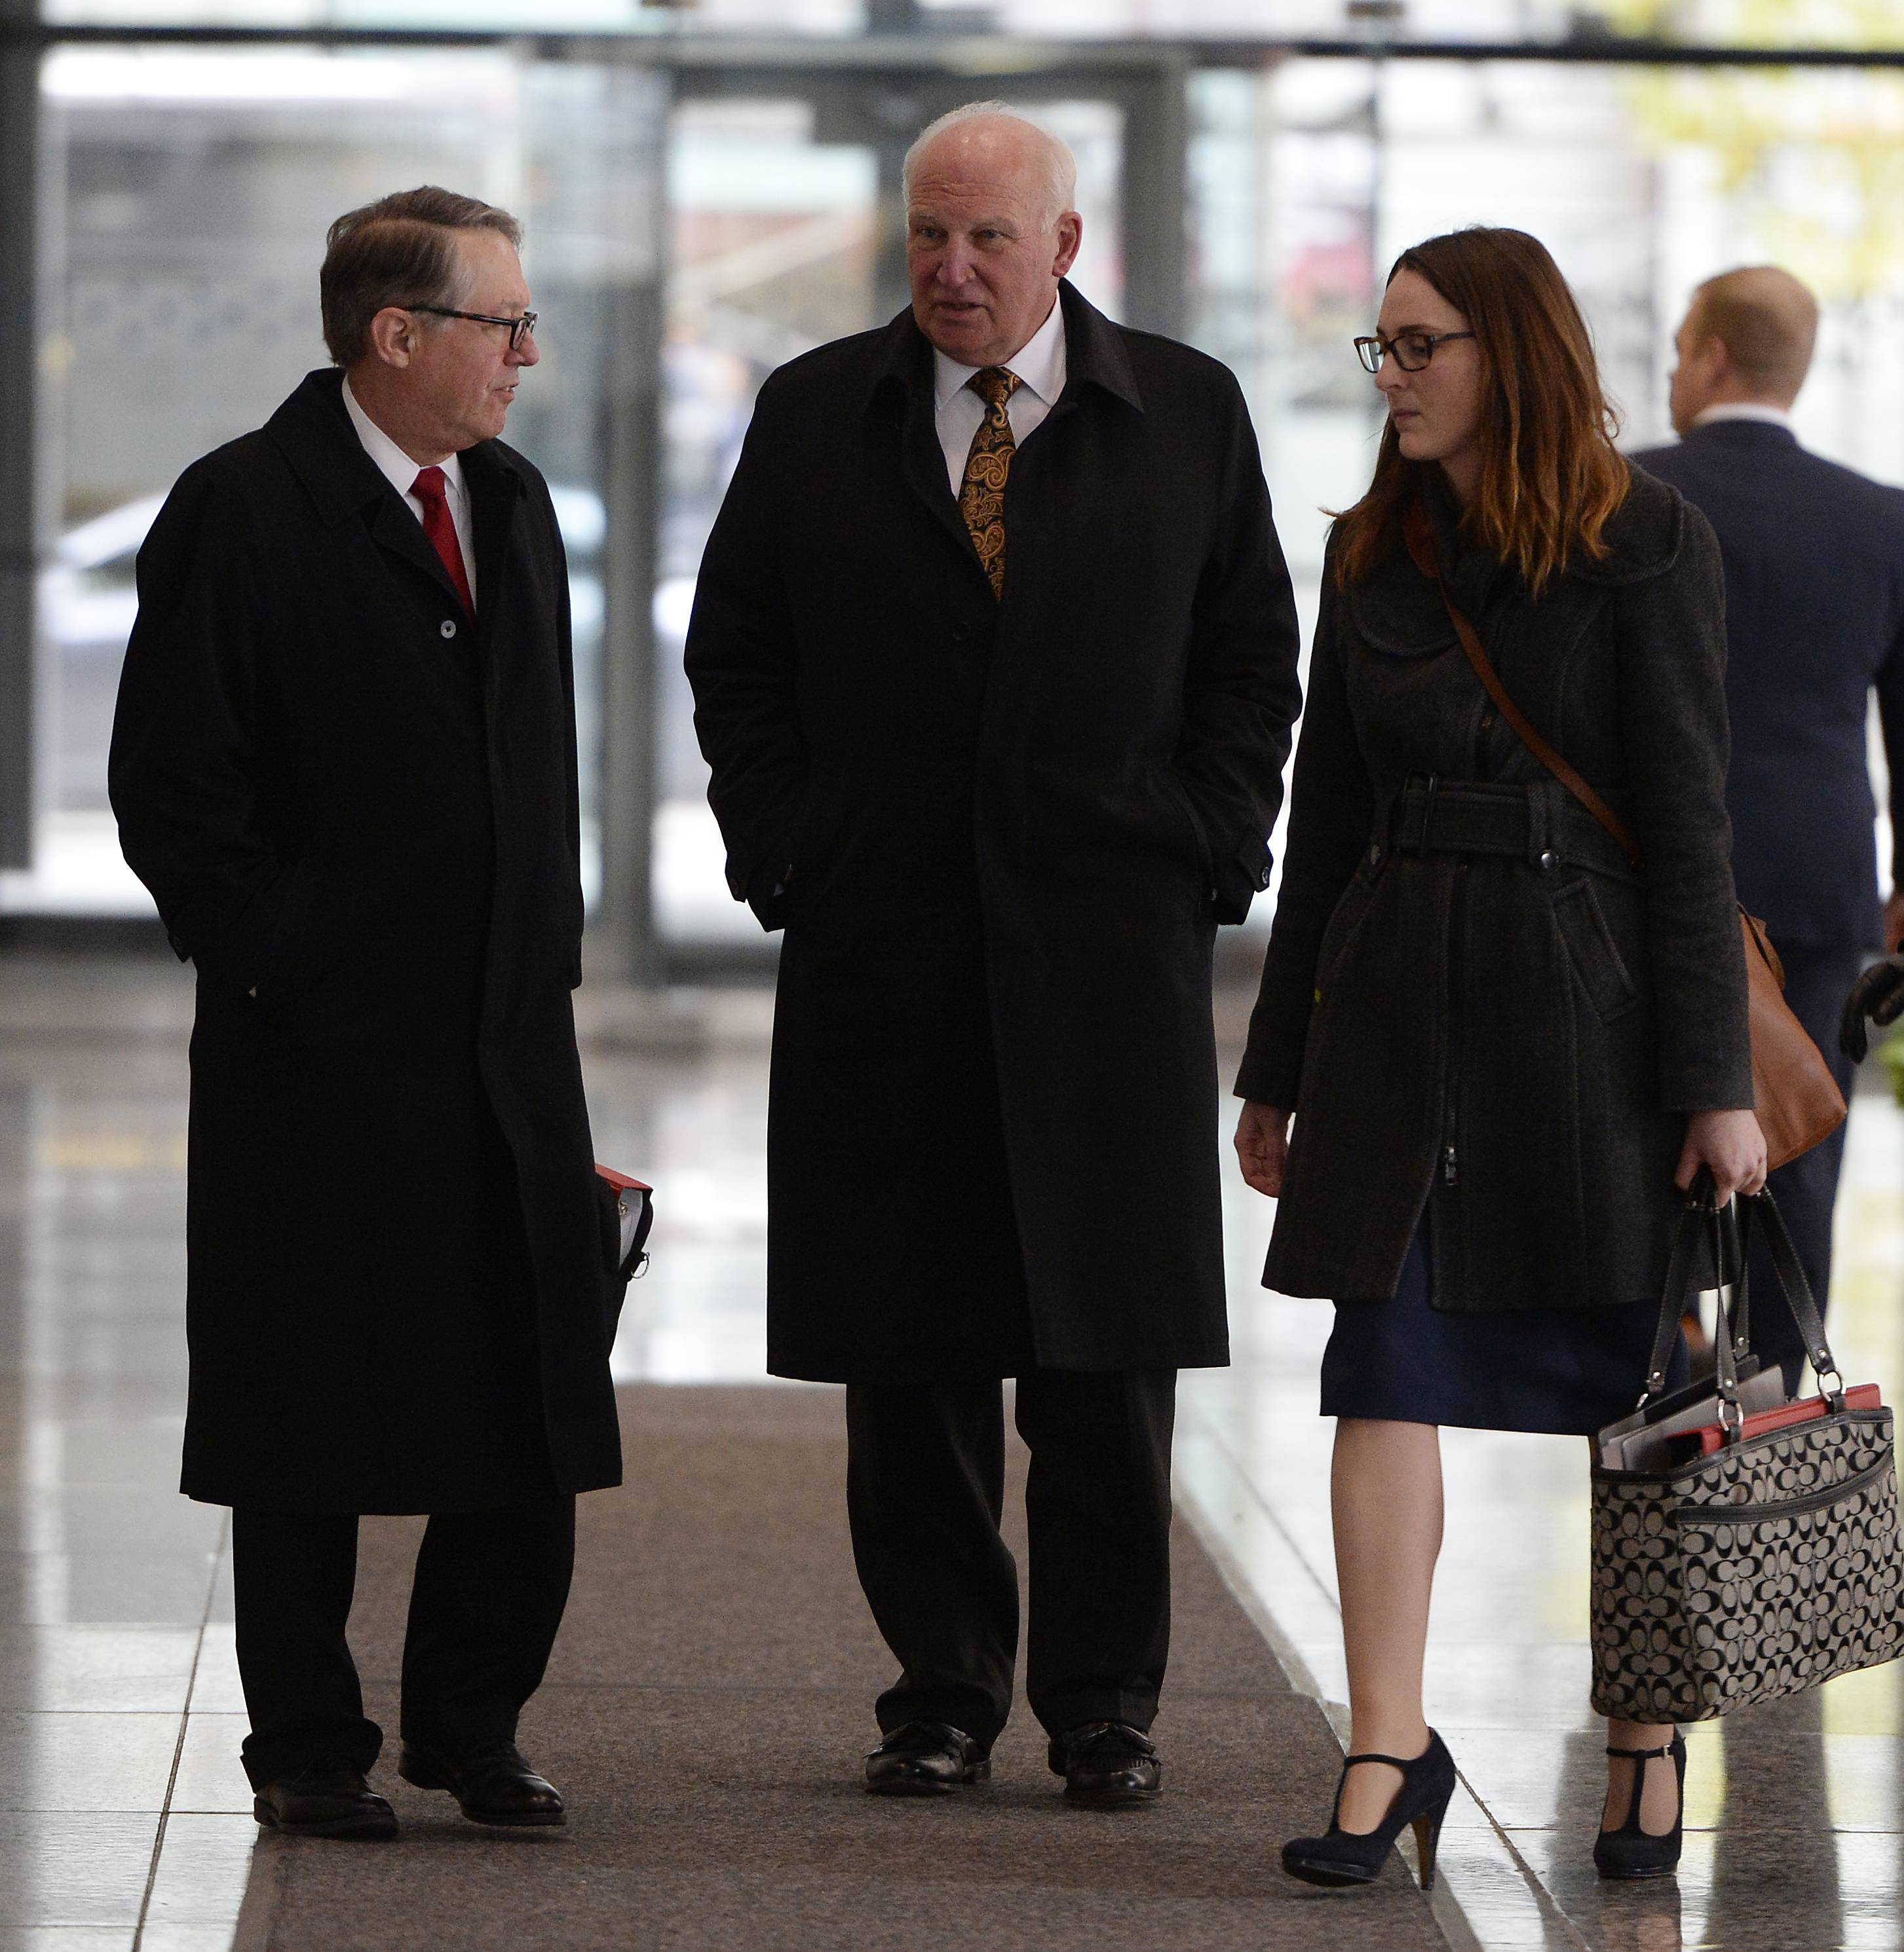 The College of DuPage has incurred at least $527,600 in legal expenses defending a 2015 decision to fire then-President Robert Breuder, center, and deny him a controversial $763,000 buyout. Those costs will continue to rise as the two sides argue in federal court.